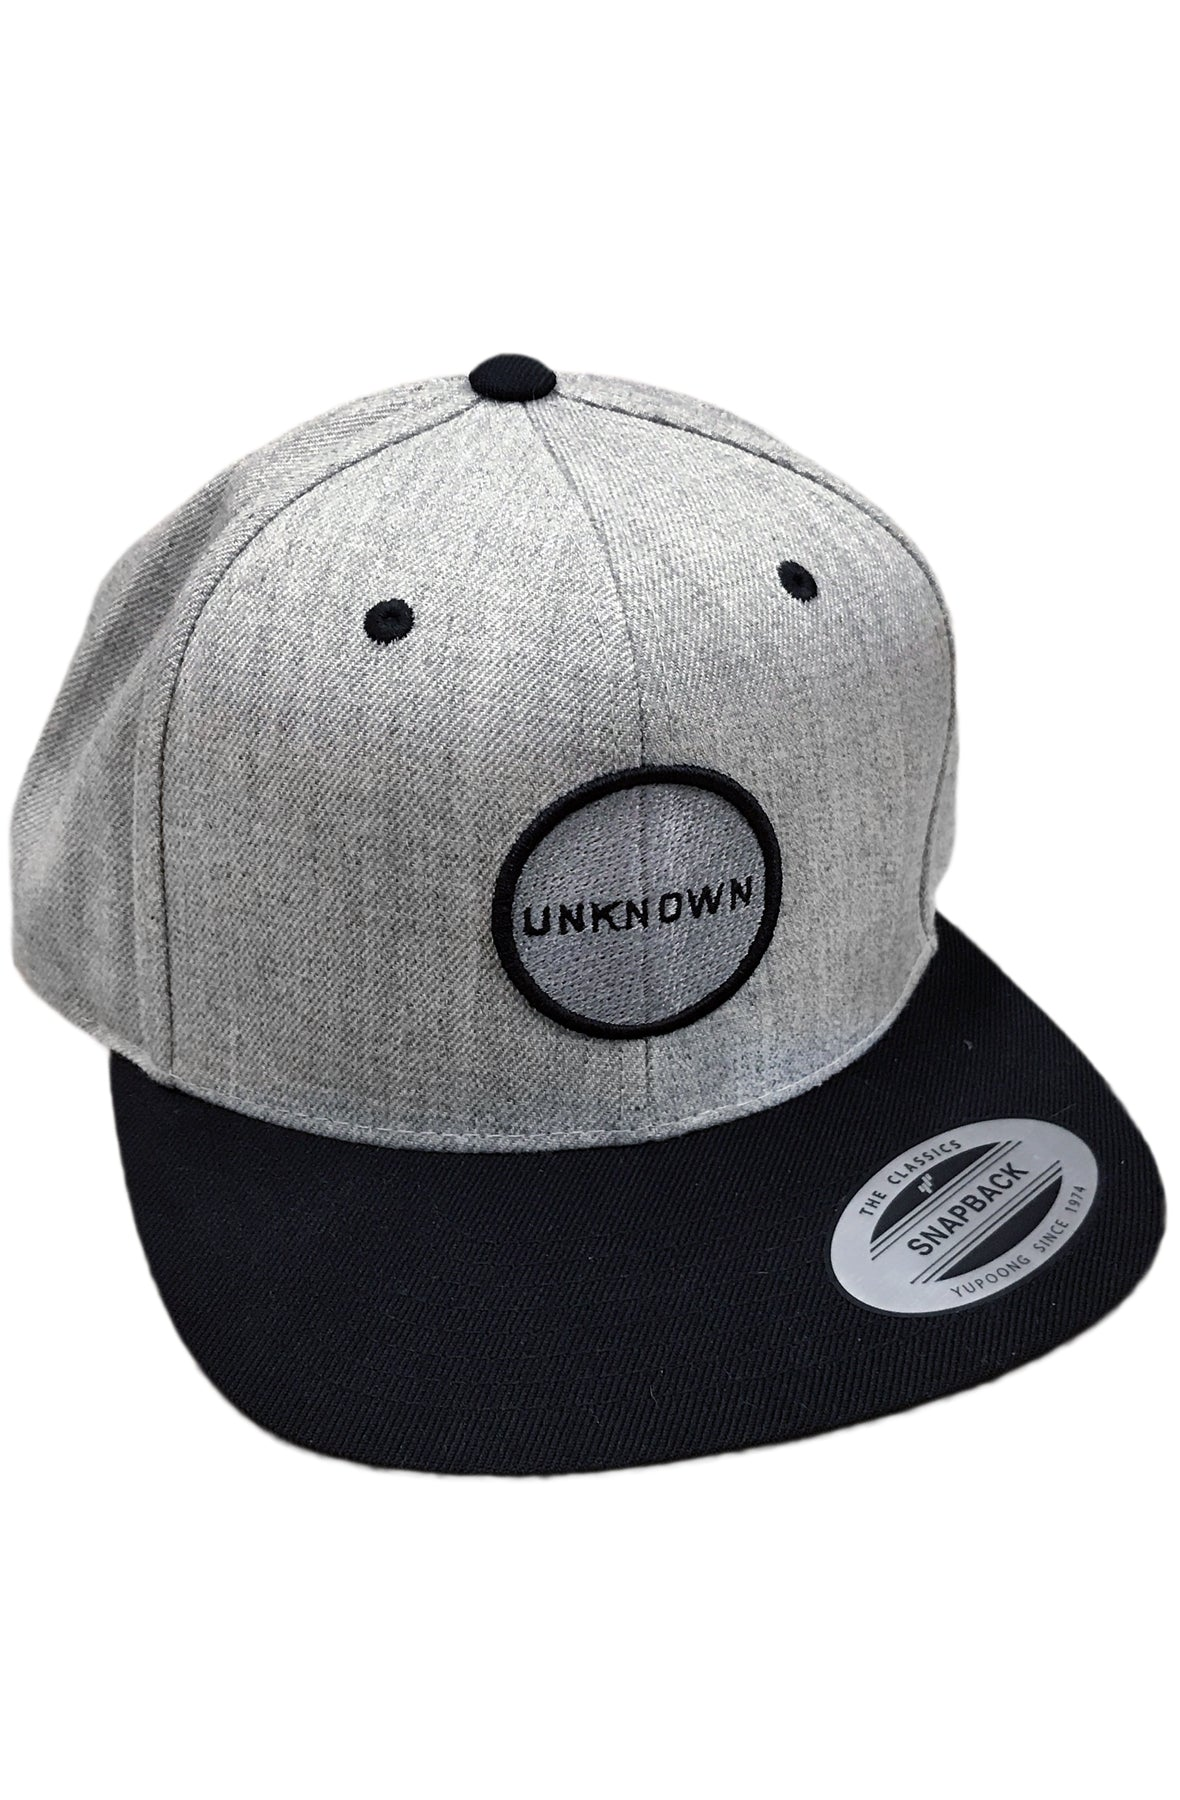 Unknown Snap Back